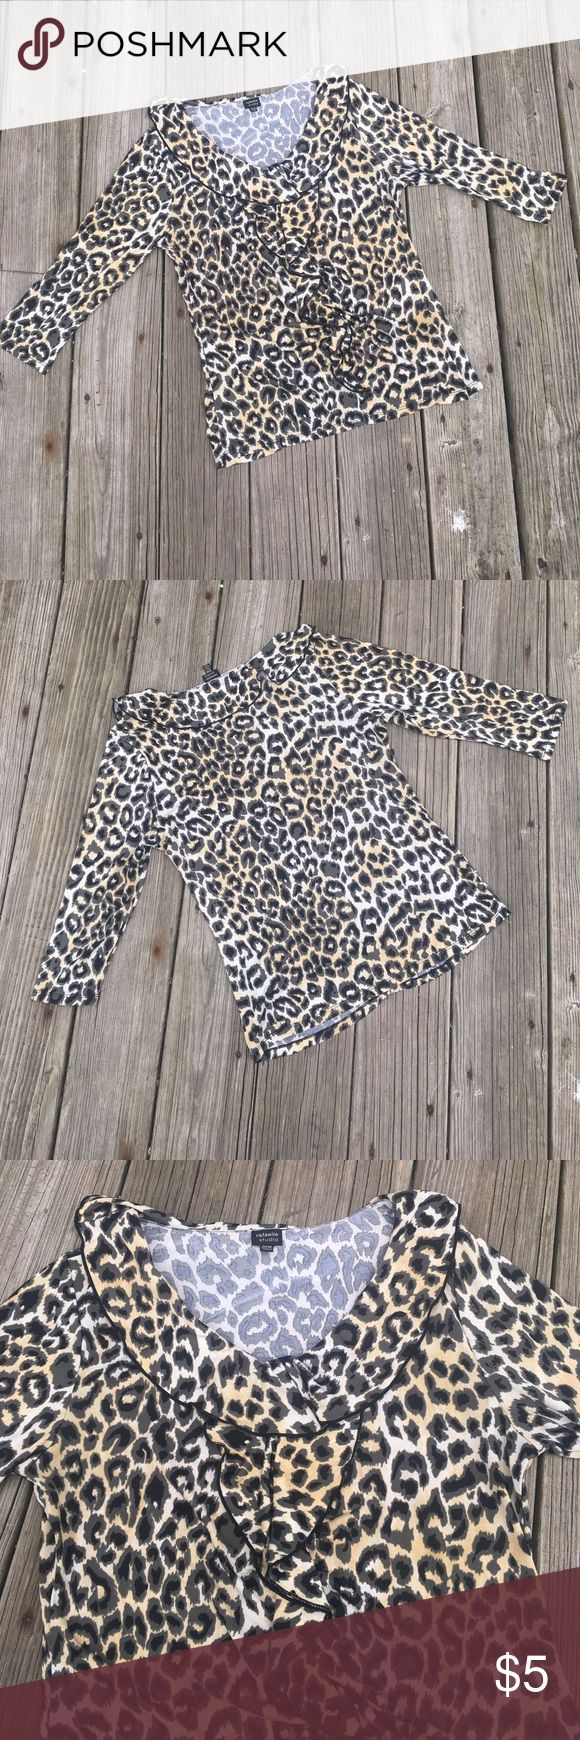 Cheetah Print Long Sleeve Top BUNDLE DEAL!!!‼️ BUY 5 $5 SHIRTS GET ONE FREE OR BUY 6 ITEMS GET 20% OFF. Rafaella Tops